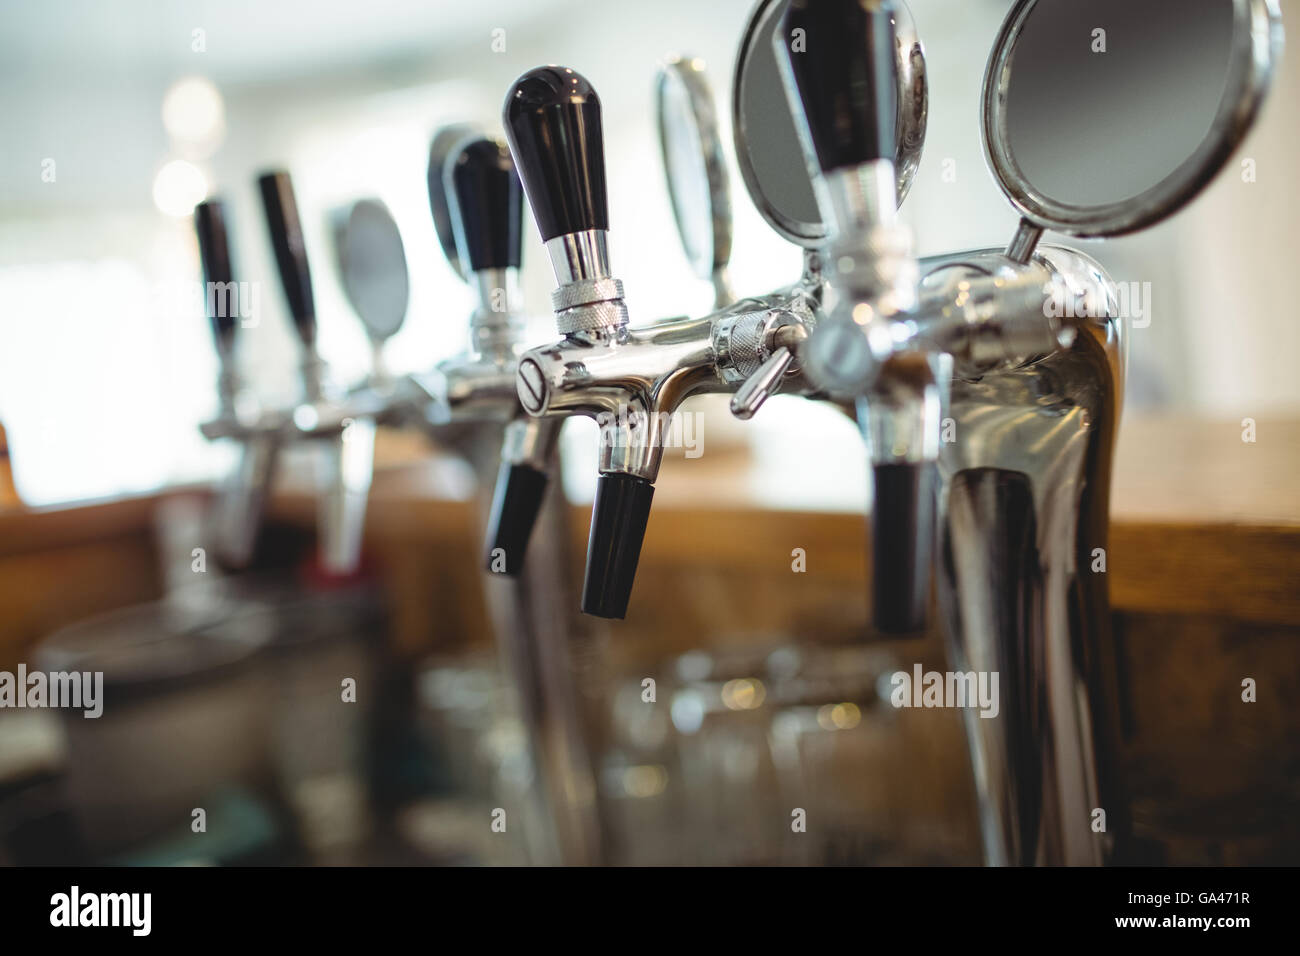 Row of beer taps at cafe - Stock Image